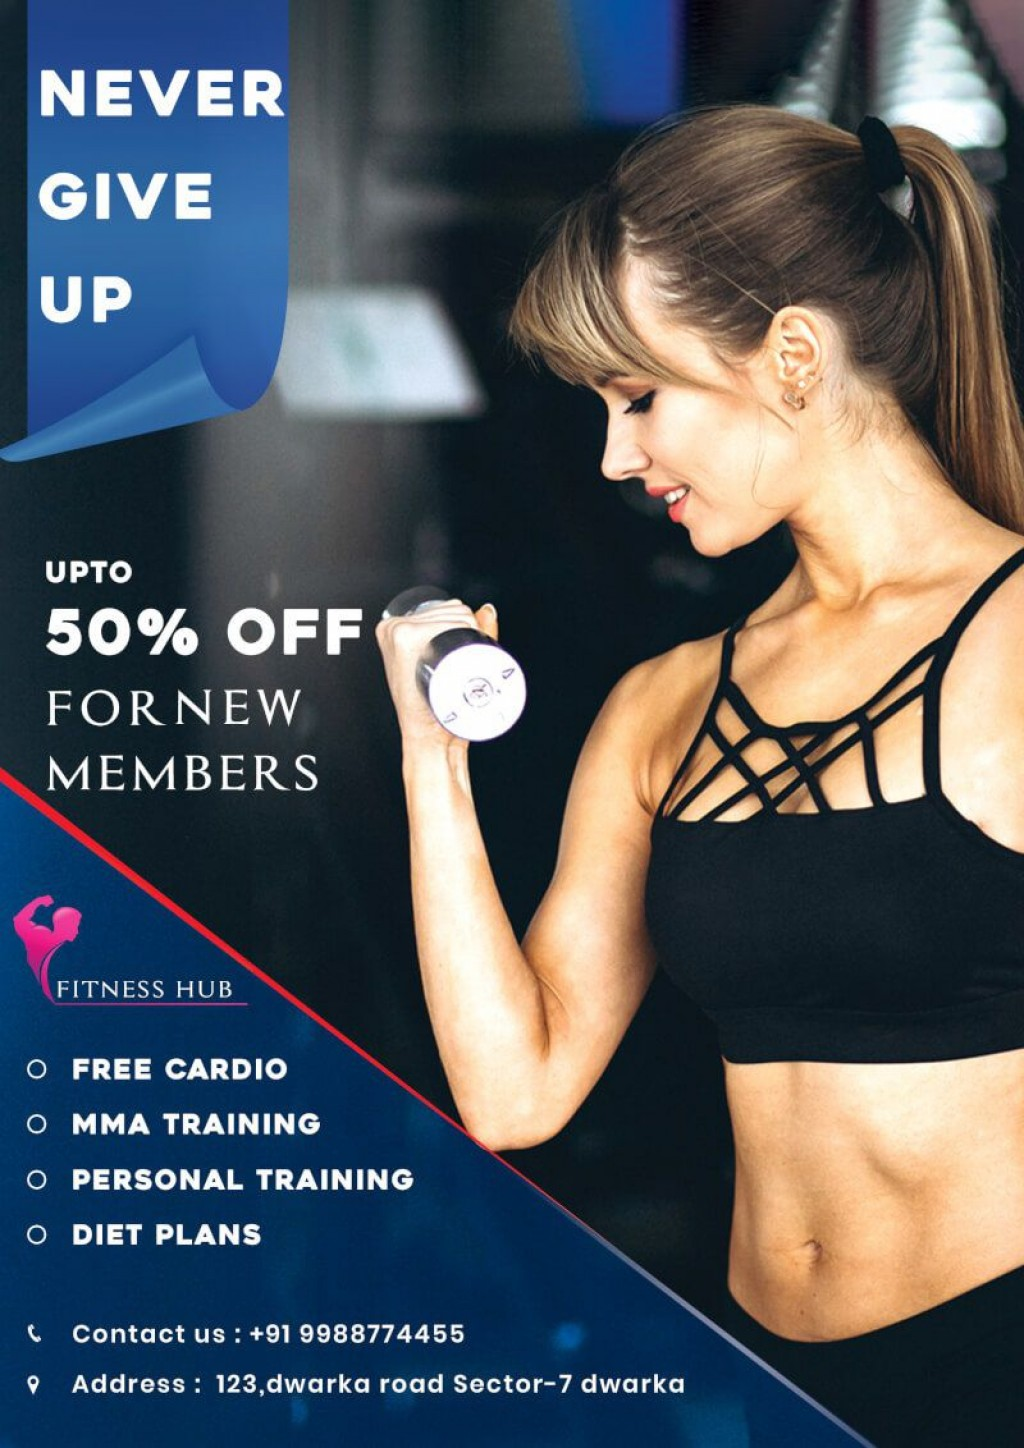 005 Incredible Personal Trainer Flyer Template Image  Word PsdLarge